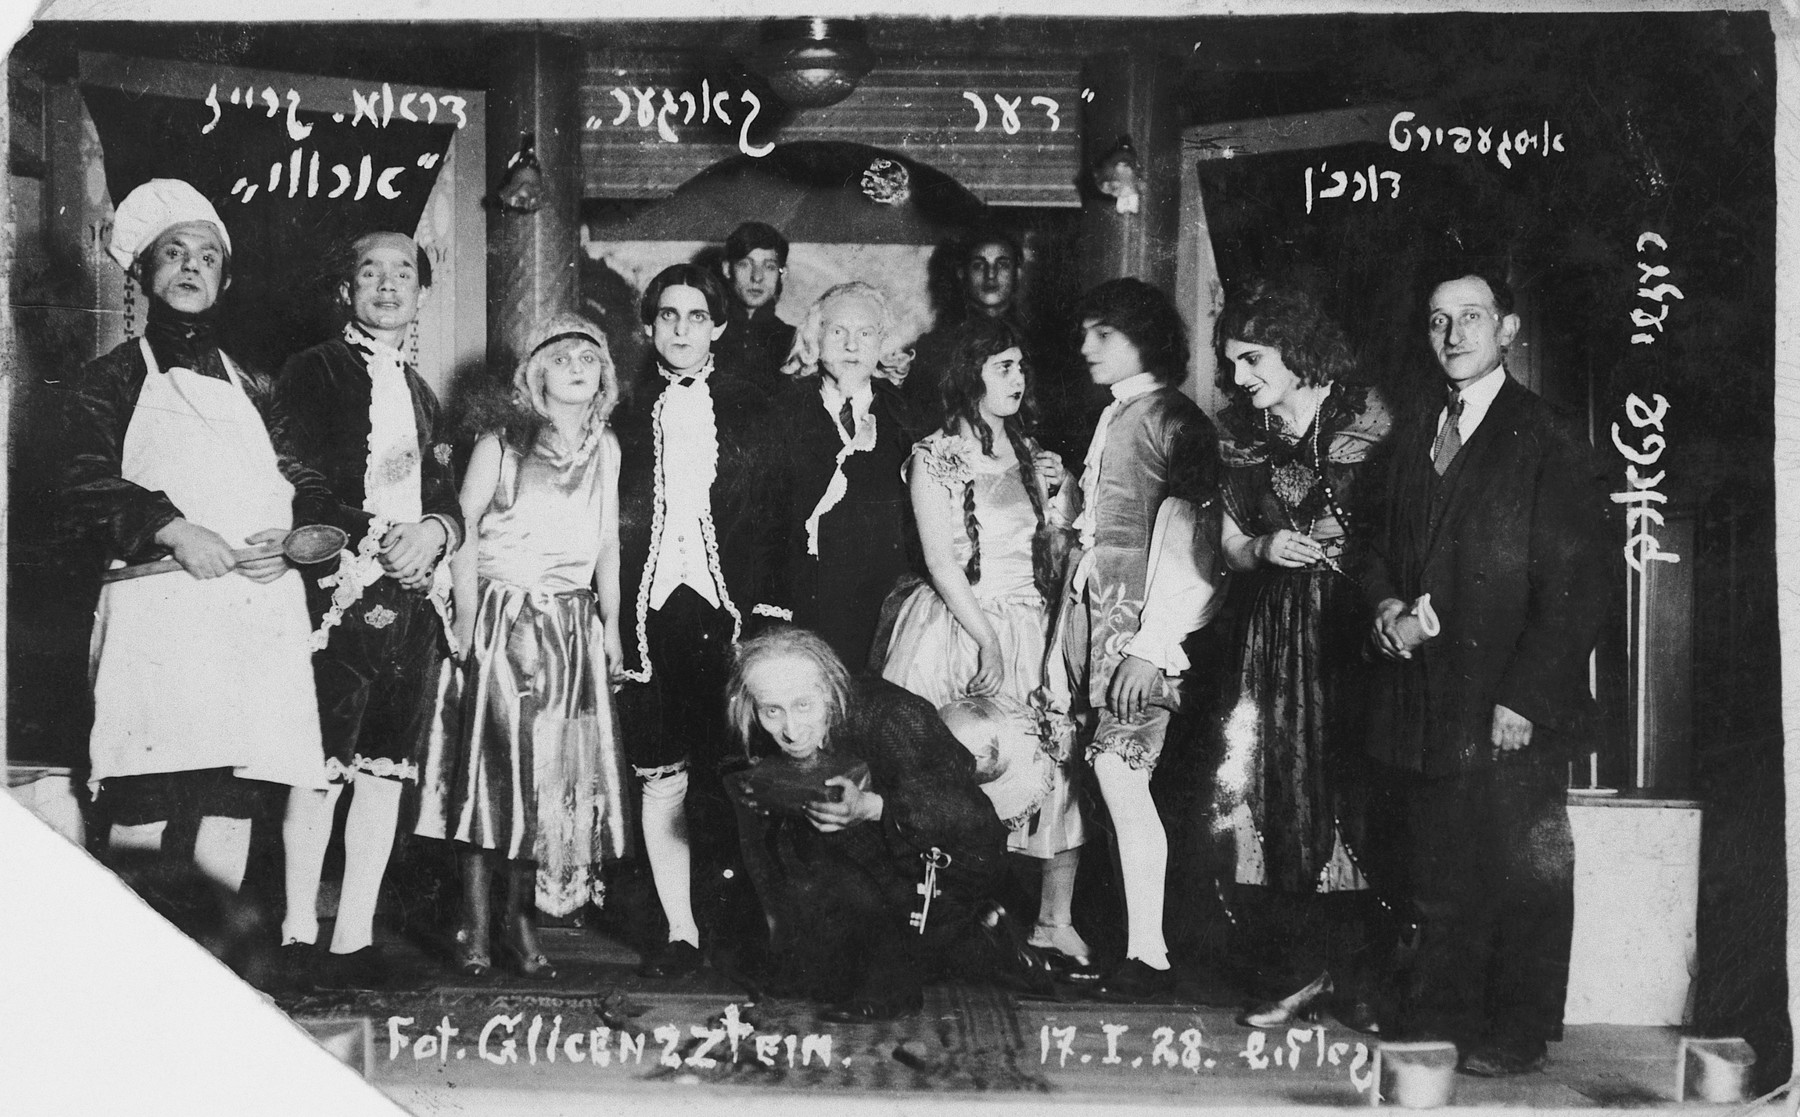 """Members of the Bundist theater group """"Arvi"""" perform the Moliere's """"The Miser"""" in Yiddish.  Heniek Storch (crouching center) plays the lead role and also directed the production.  Also pictured are Szmerling (extreme right), Nissenboym, David Lezerowicz, I. Kac (Szlamowicz) and Yakub Kac."""